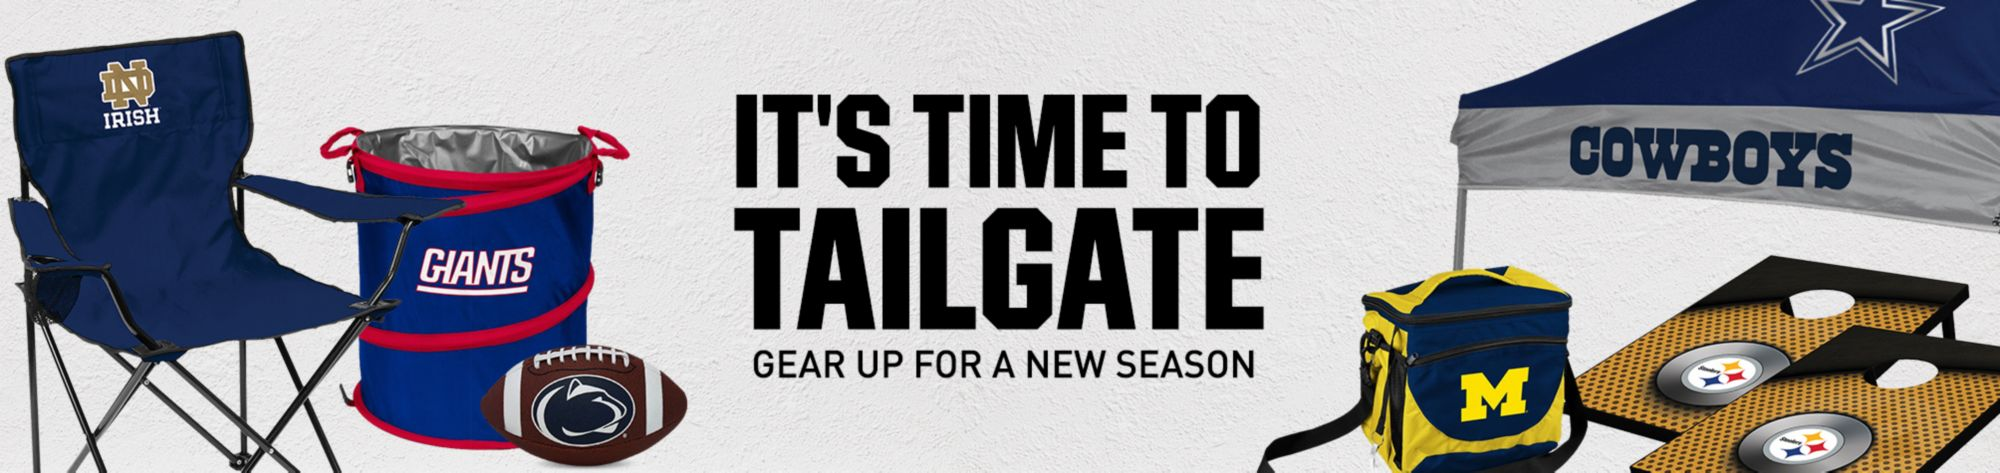 It's Time to Tailgate Gear Up For A New Season